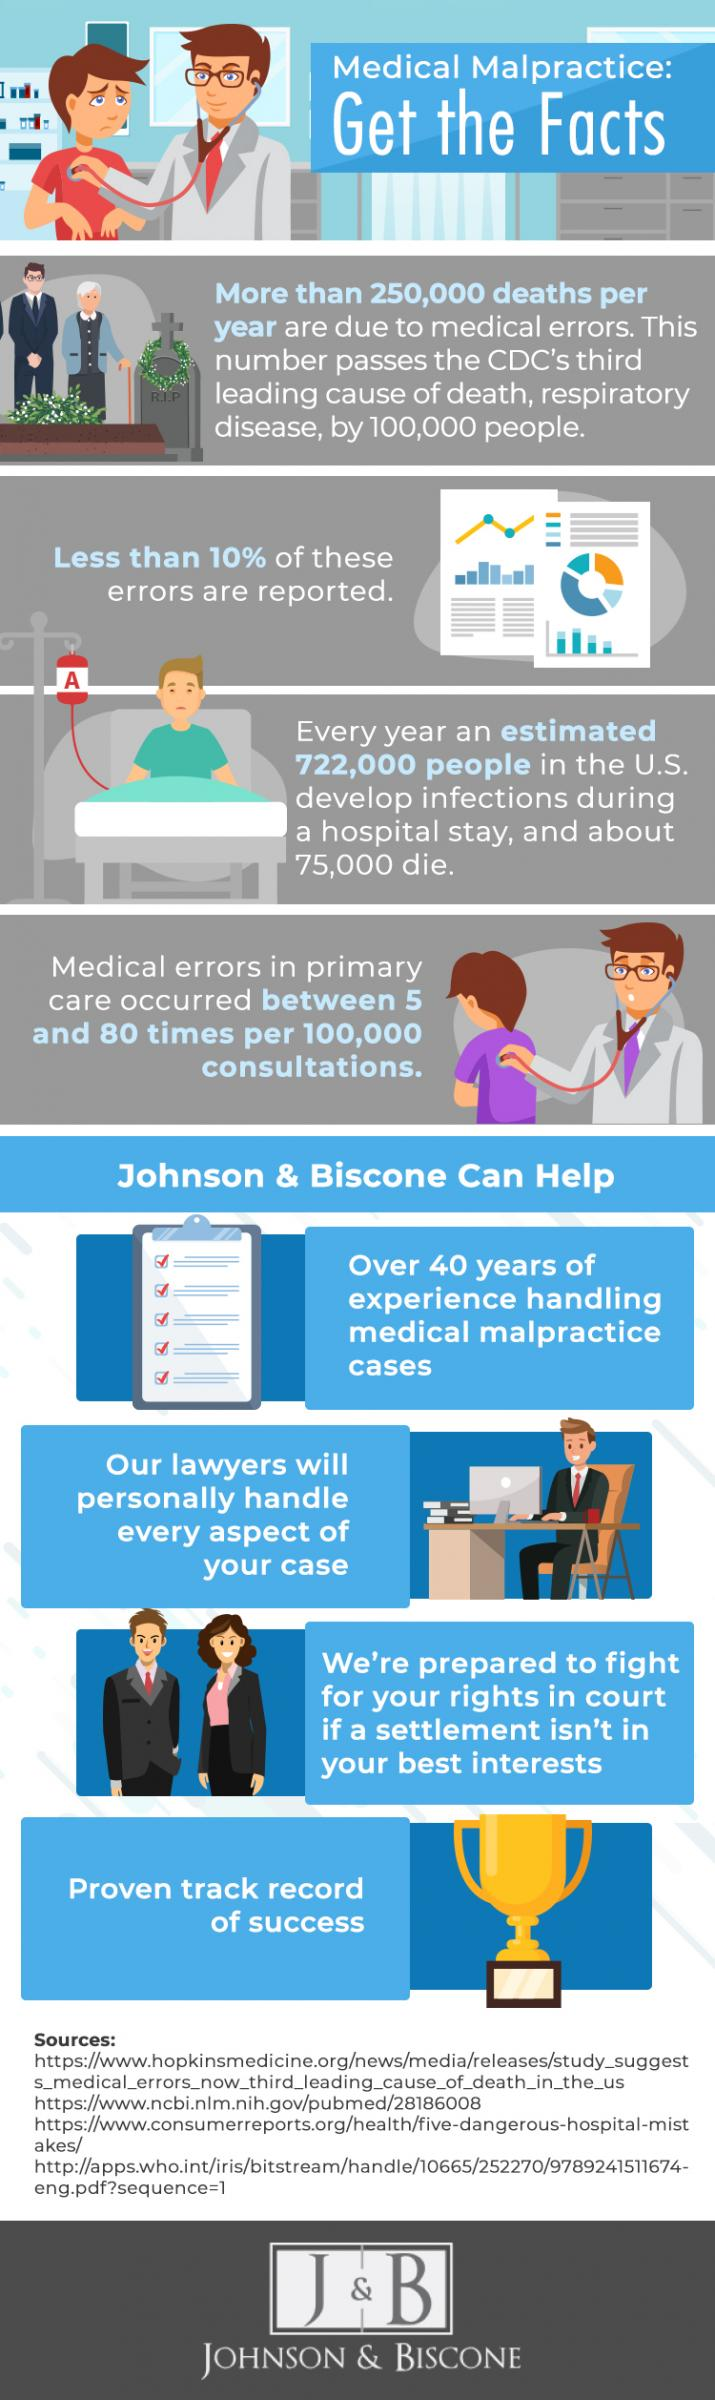 medical malpractice facts infographic